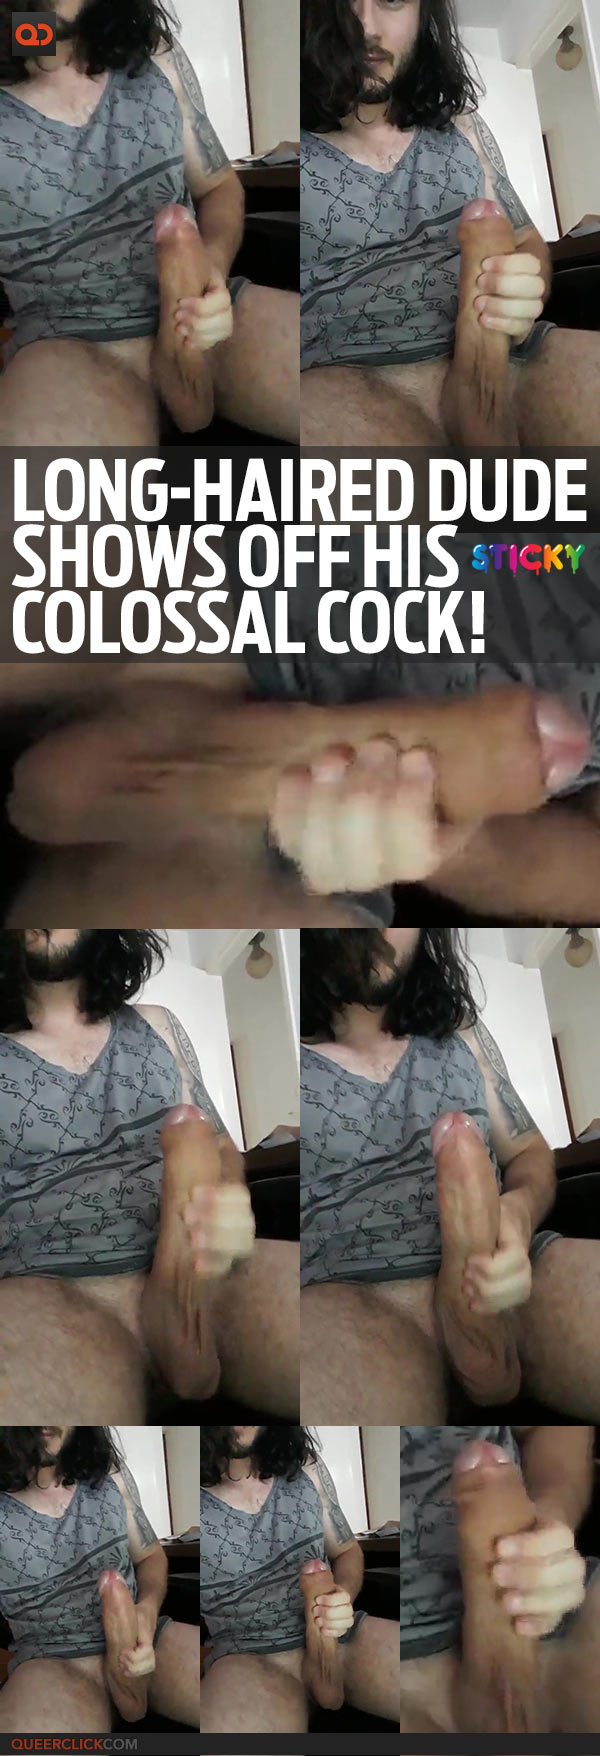 Long-Haired Dude Shows Off His Colossal Cock!